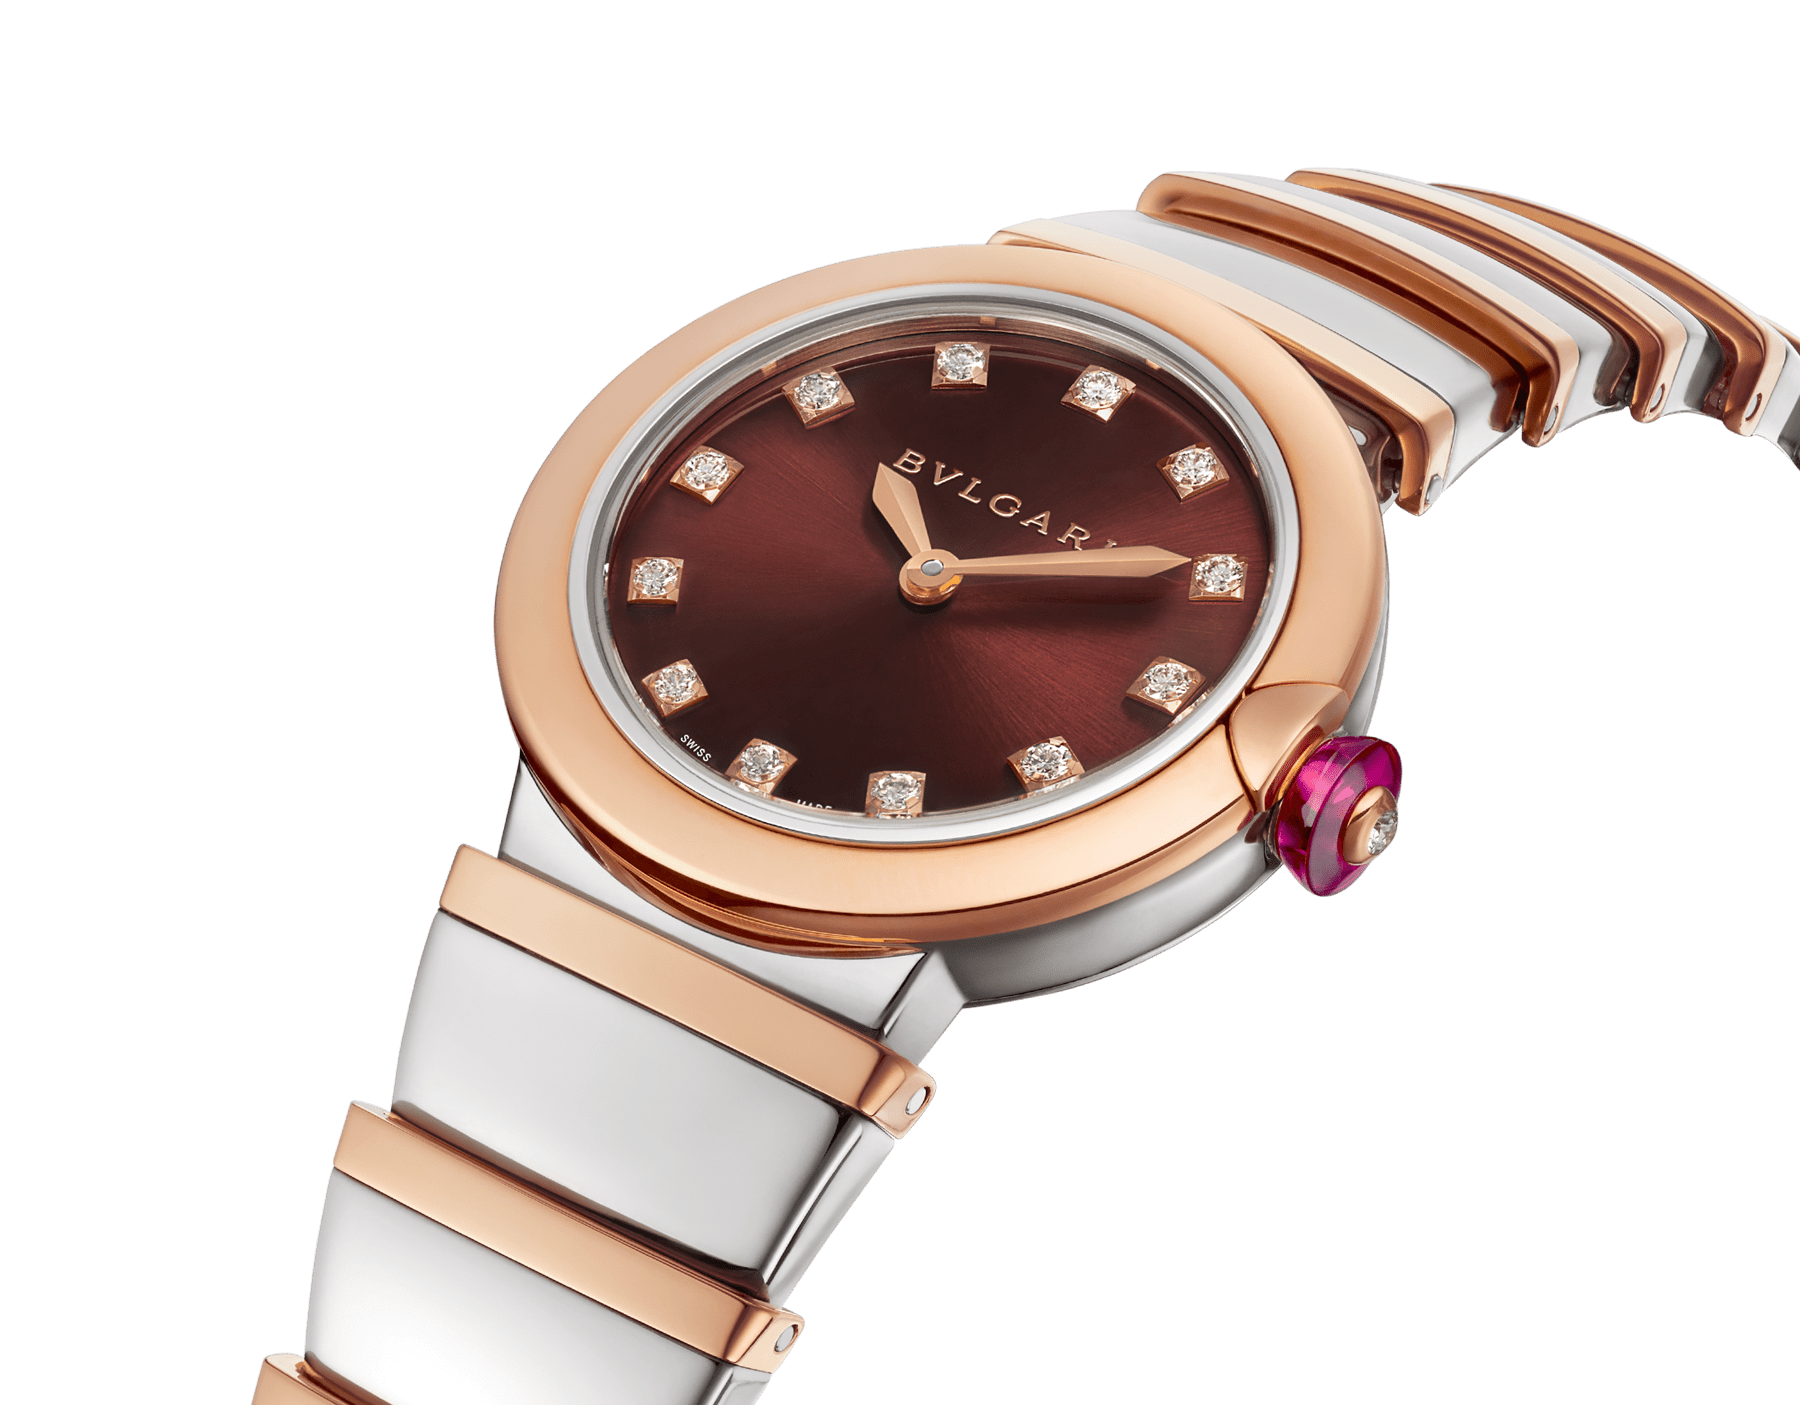 LVCEA watch in 18kt rose gold and stainless steel case and bracelet, and brown dial set with diamond indexes. 102691 image 2